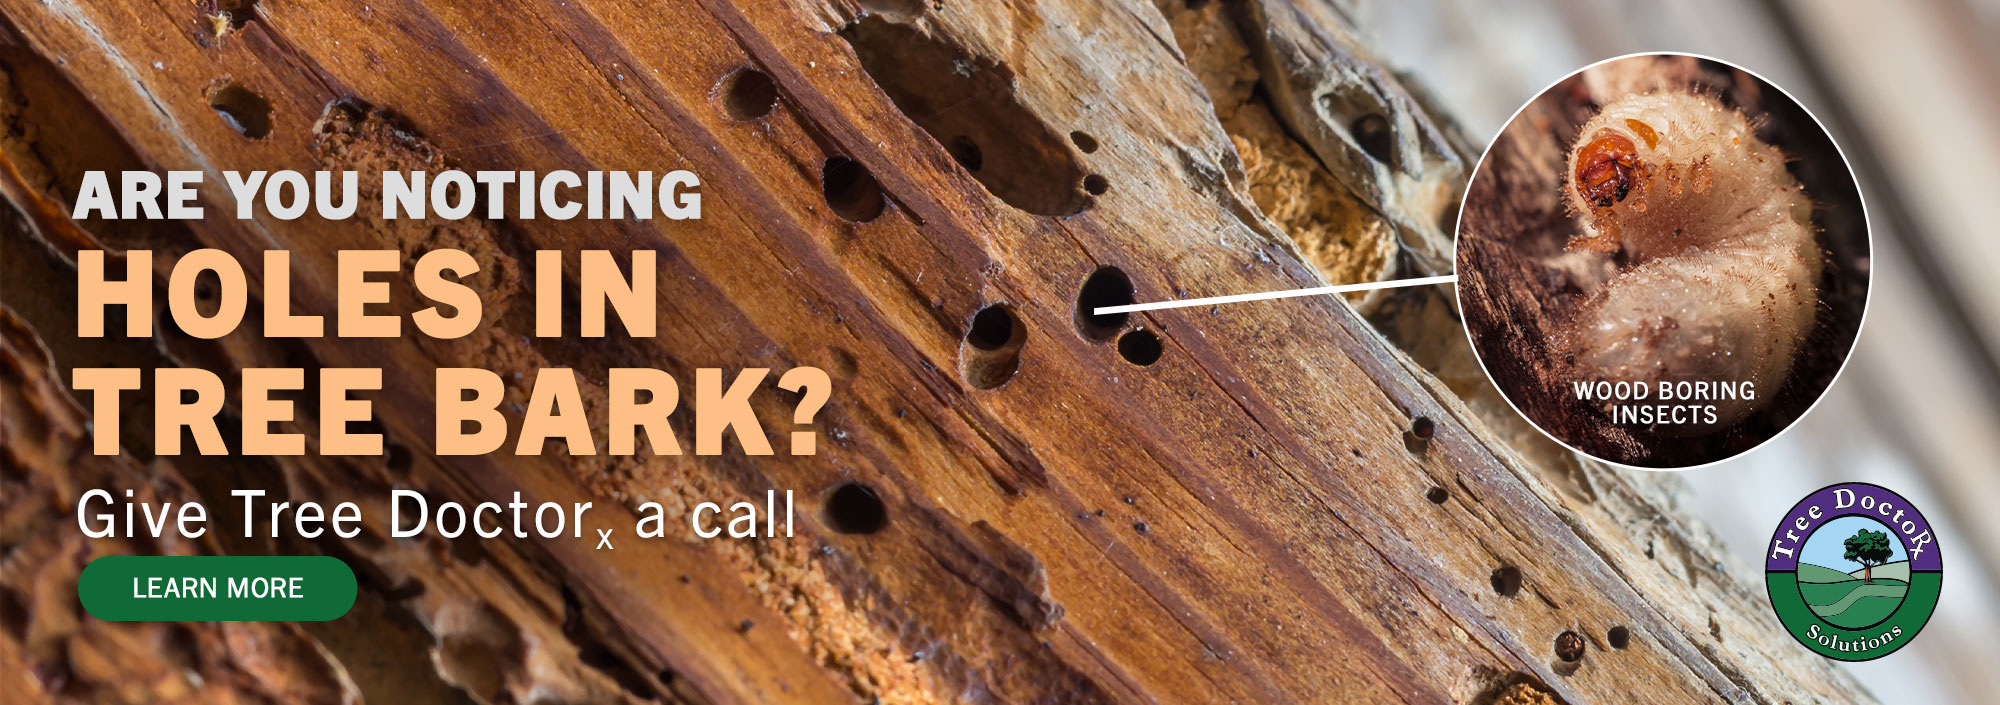 Are you noticing Holes in your tree bark?